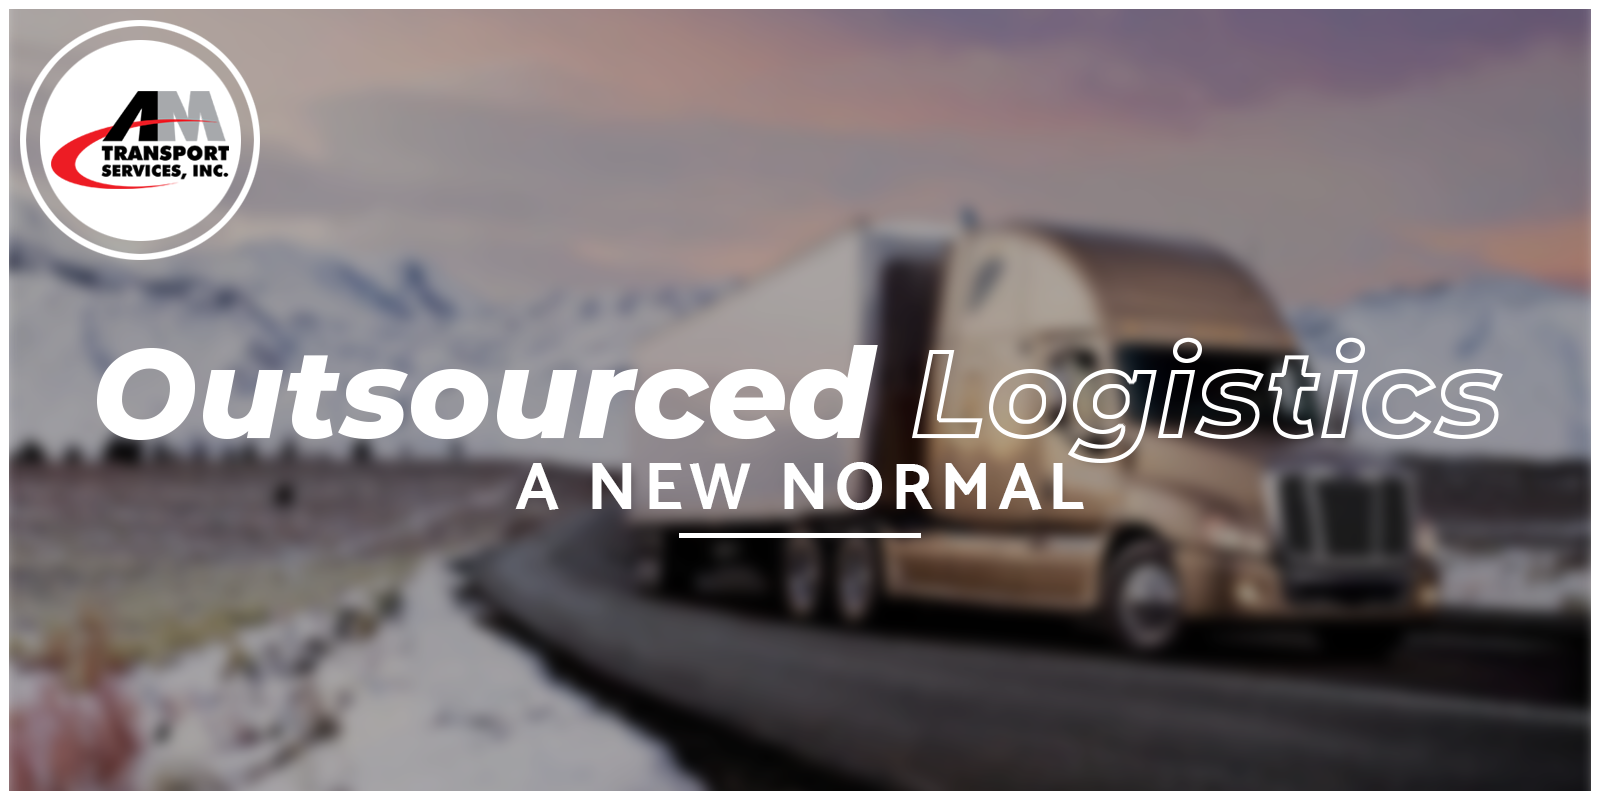 Wintry scene with truck and tagline: Outsourced Logistics: A New Normal